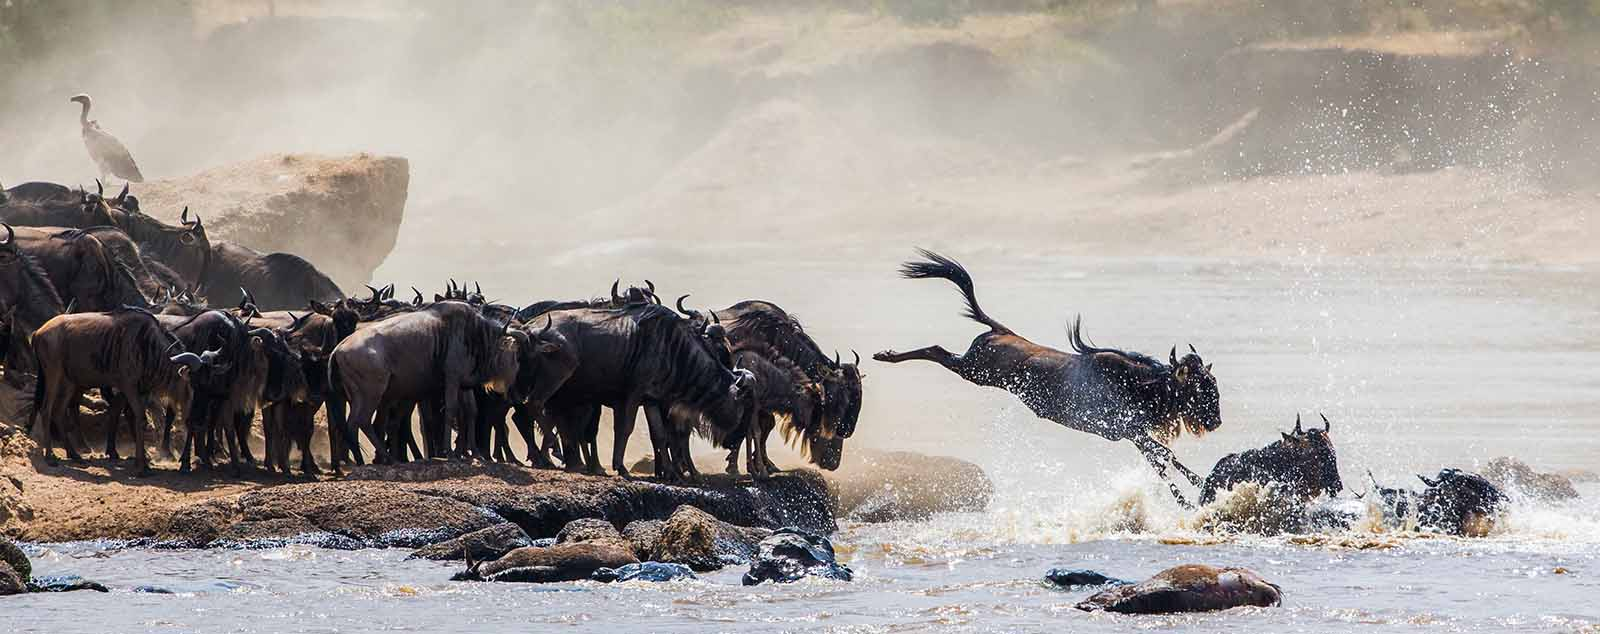 Herd of Wildebeest diving into the river